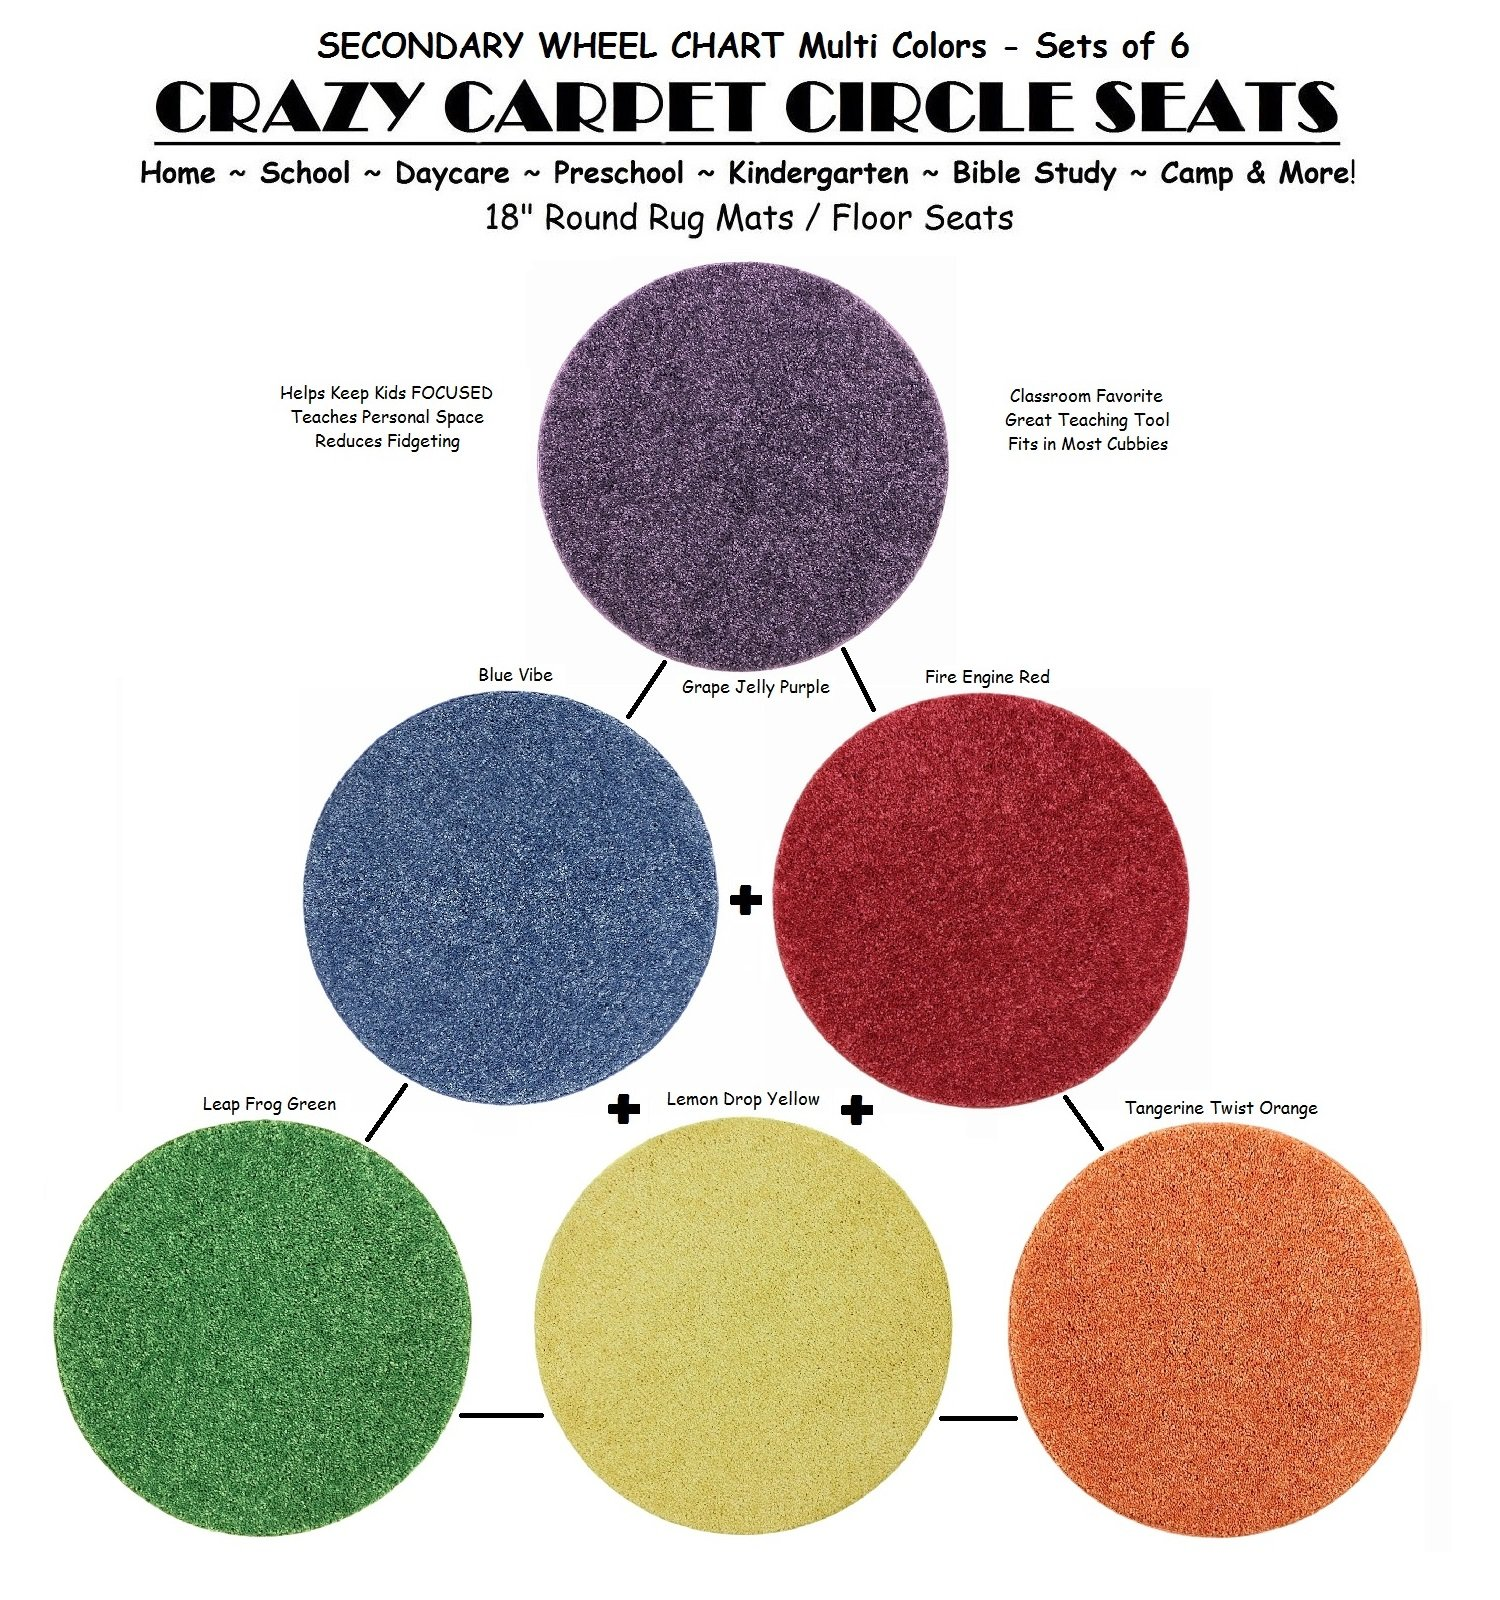 Children's CraZy CarPet CirCle SeaTs SECONDARY Wheel Chart Multi Color (Sets of 6) 18'' Rug Mats / Individual Floor Rugs (2 Sets of 6 = 12 Seats) by Children's Choice